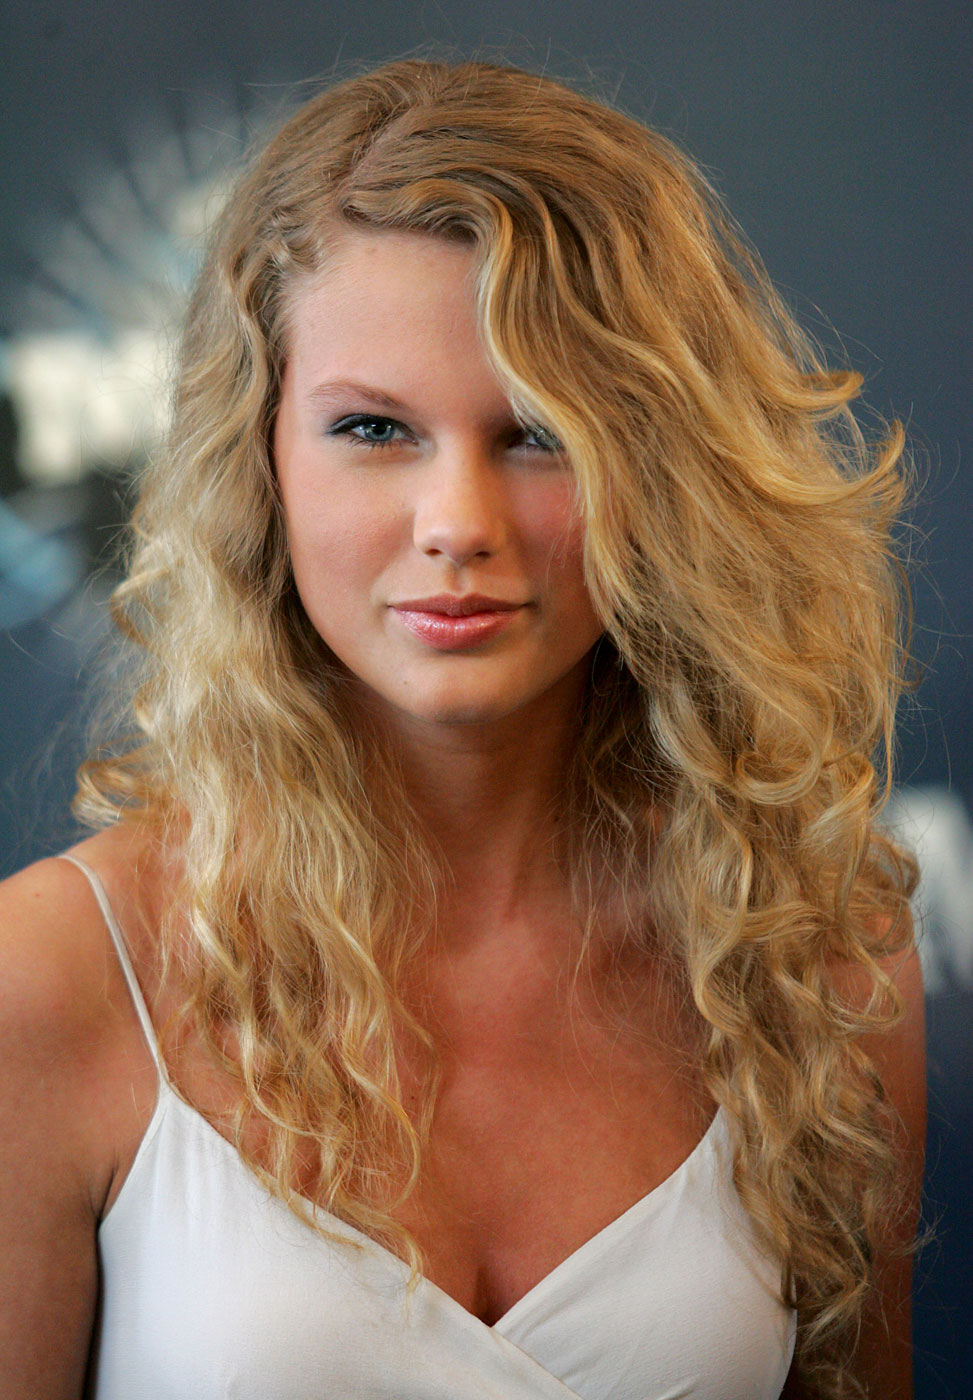 Taylor Swift arrives at the 2006 CMT Music Awards at the Curb Event Center at Belmont University in Nashville, Tennessee.